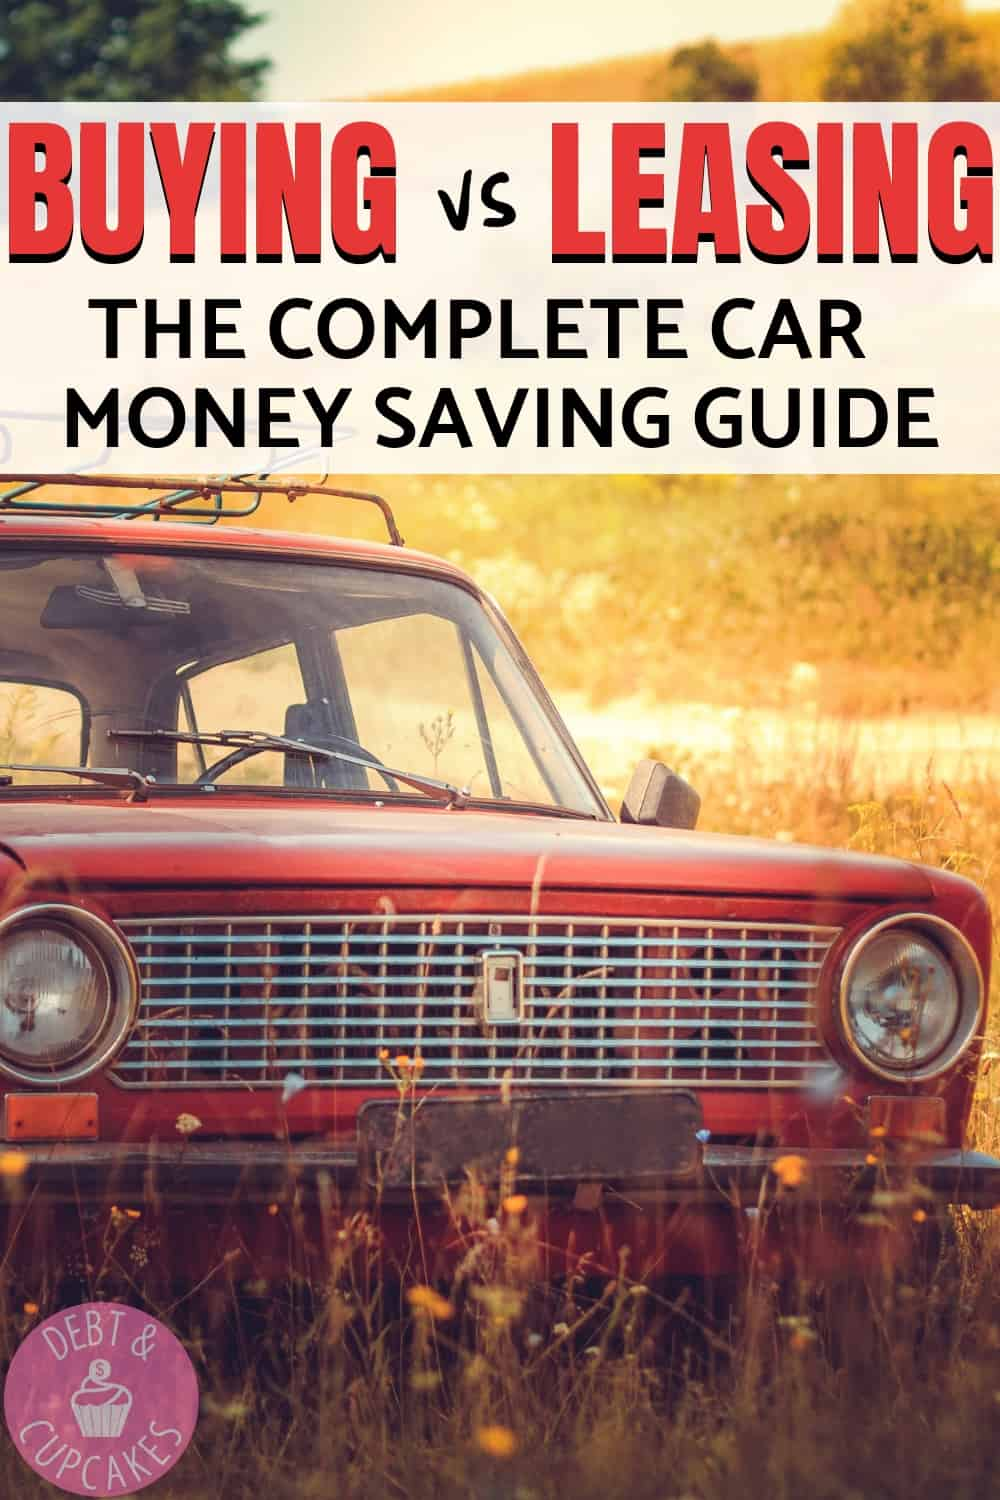 Buying a car vs leasing. Which method will save you the most money?